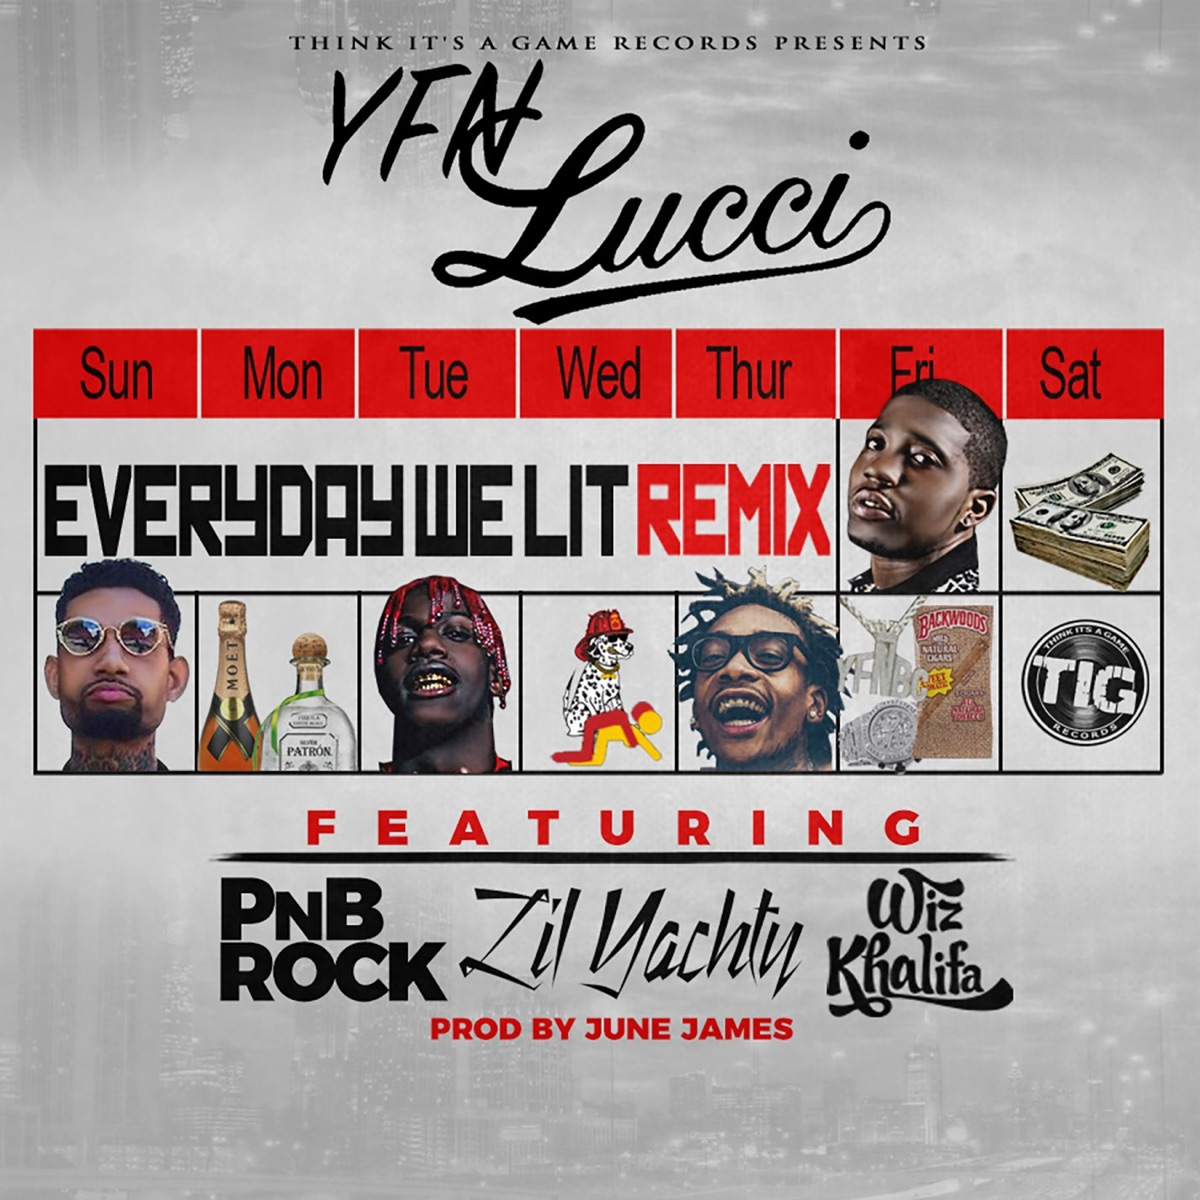 Everyday We Lit feat PnB Rock Lil Yachty  Wiz Khalifa Remix - Single YFN Lucci CD cover